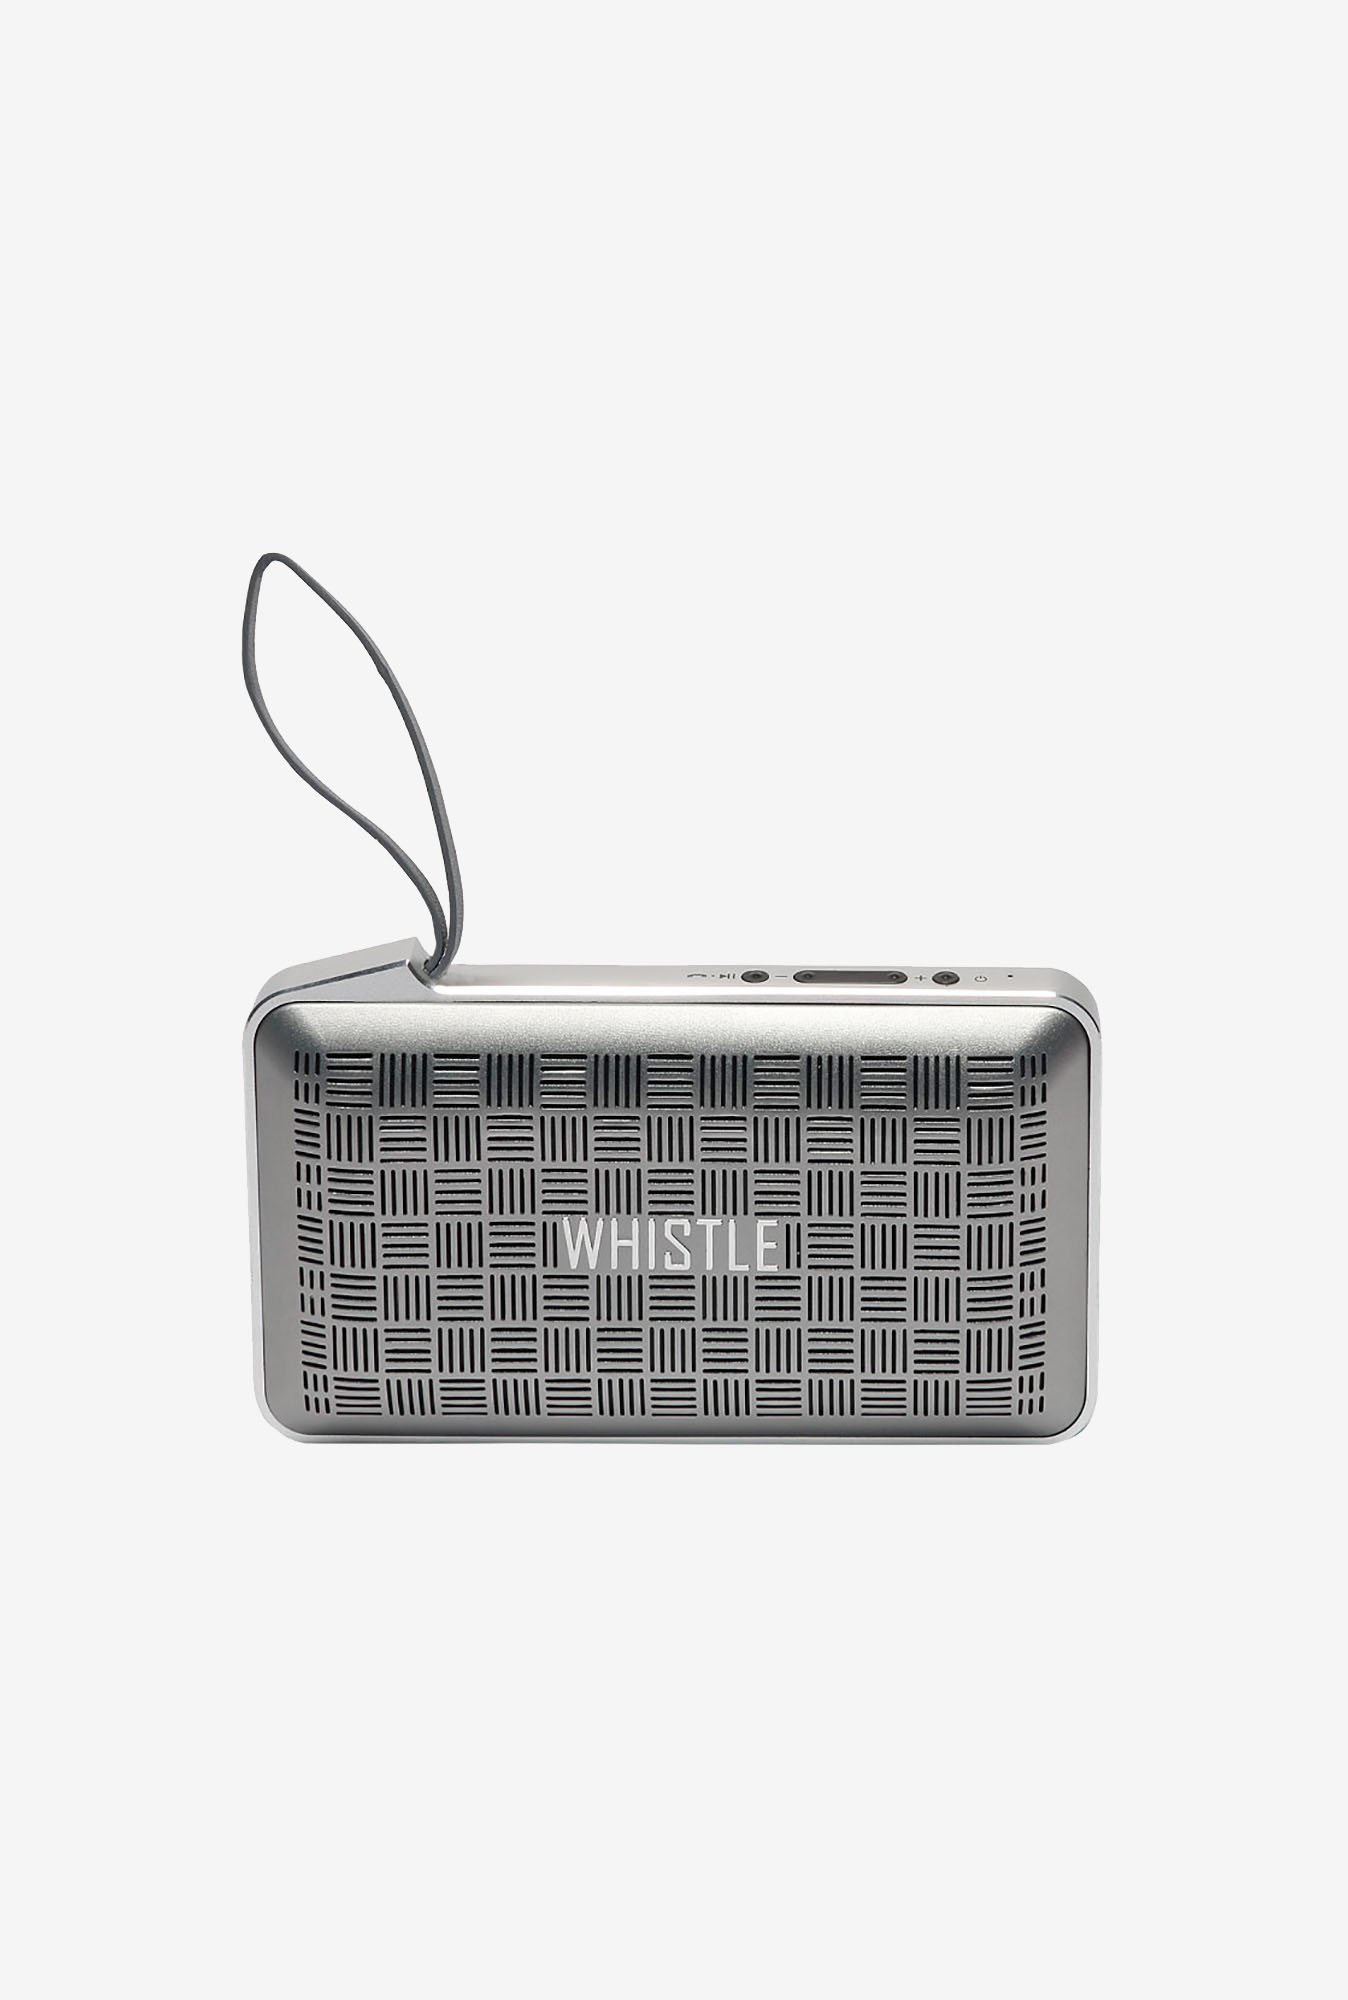 Whistle Smart Portable Bluetooth Speaker (Silver)